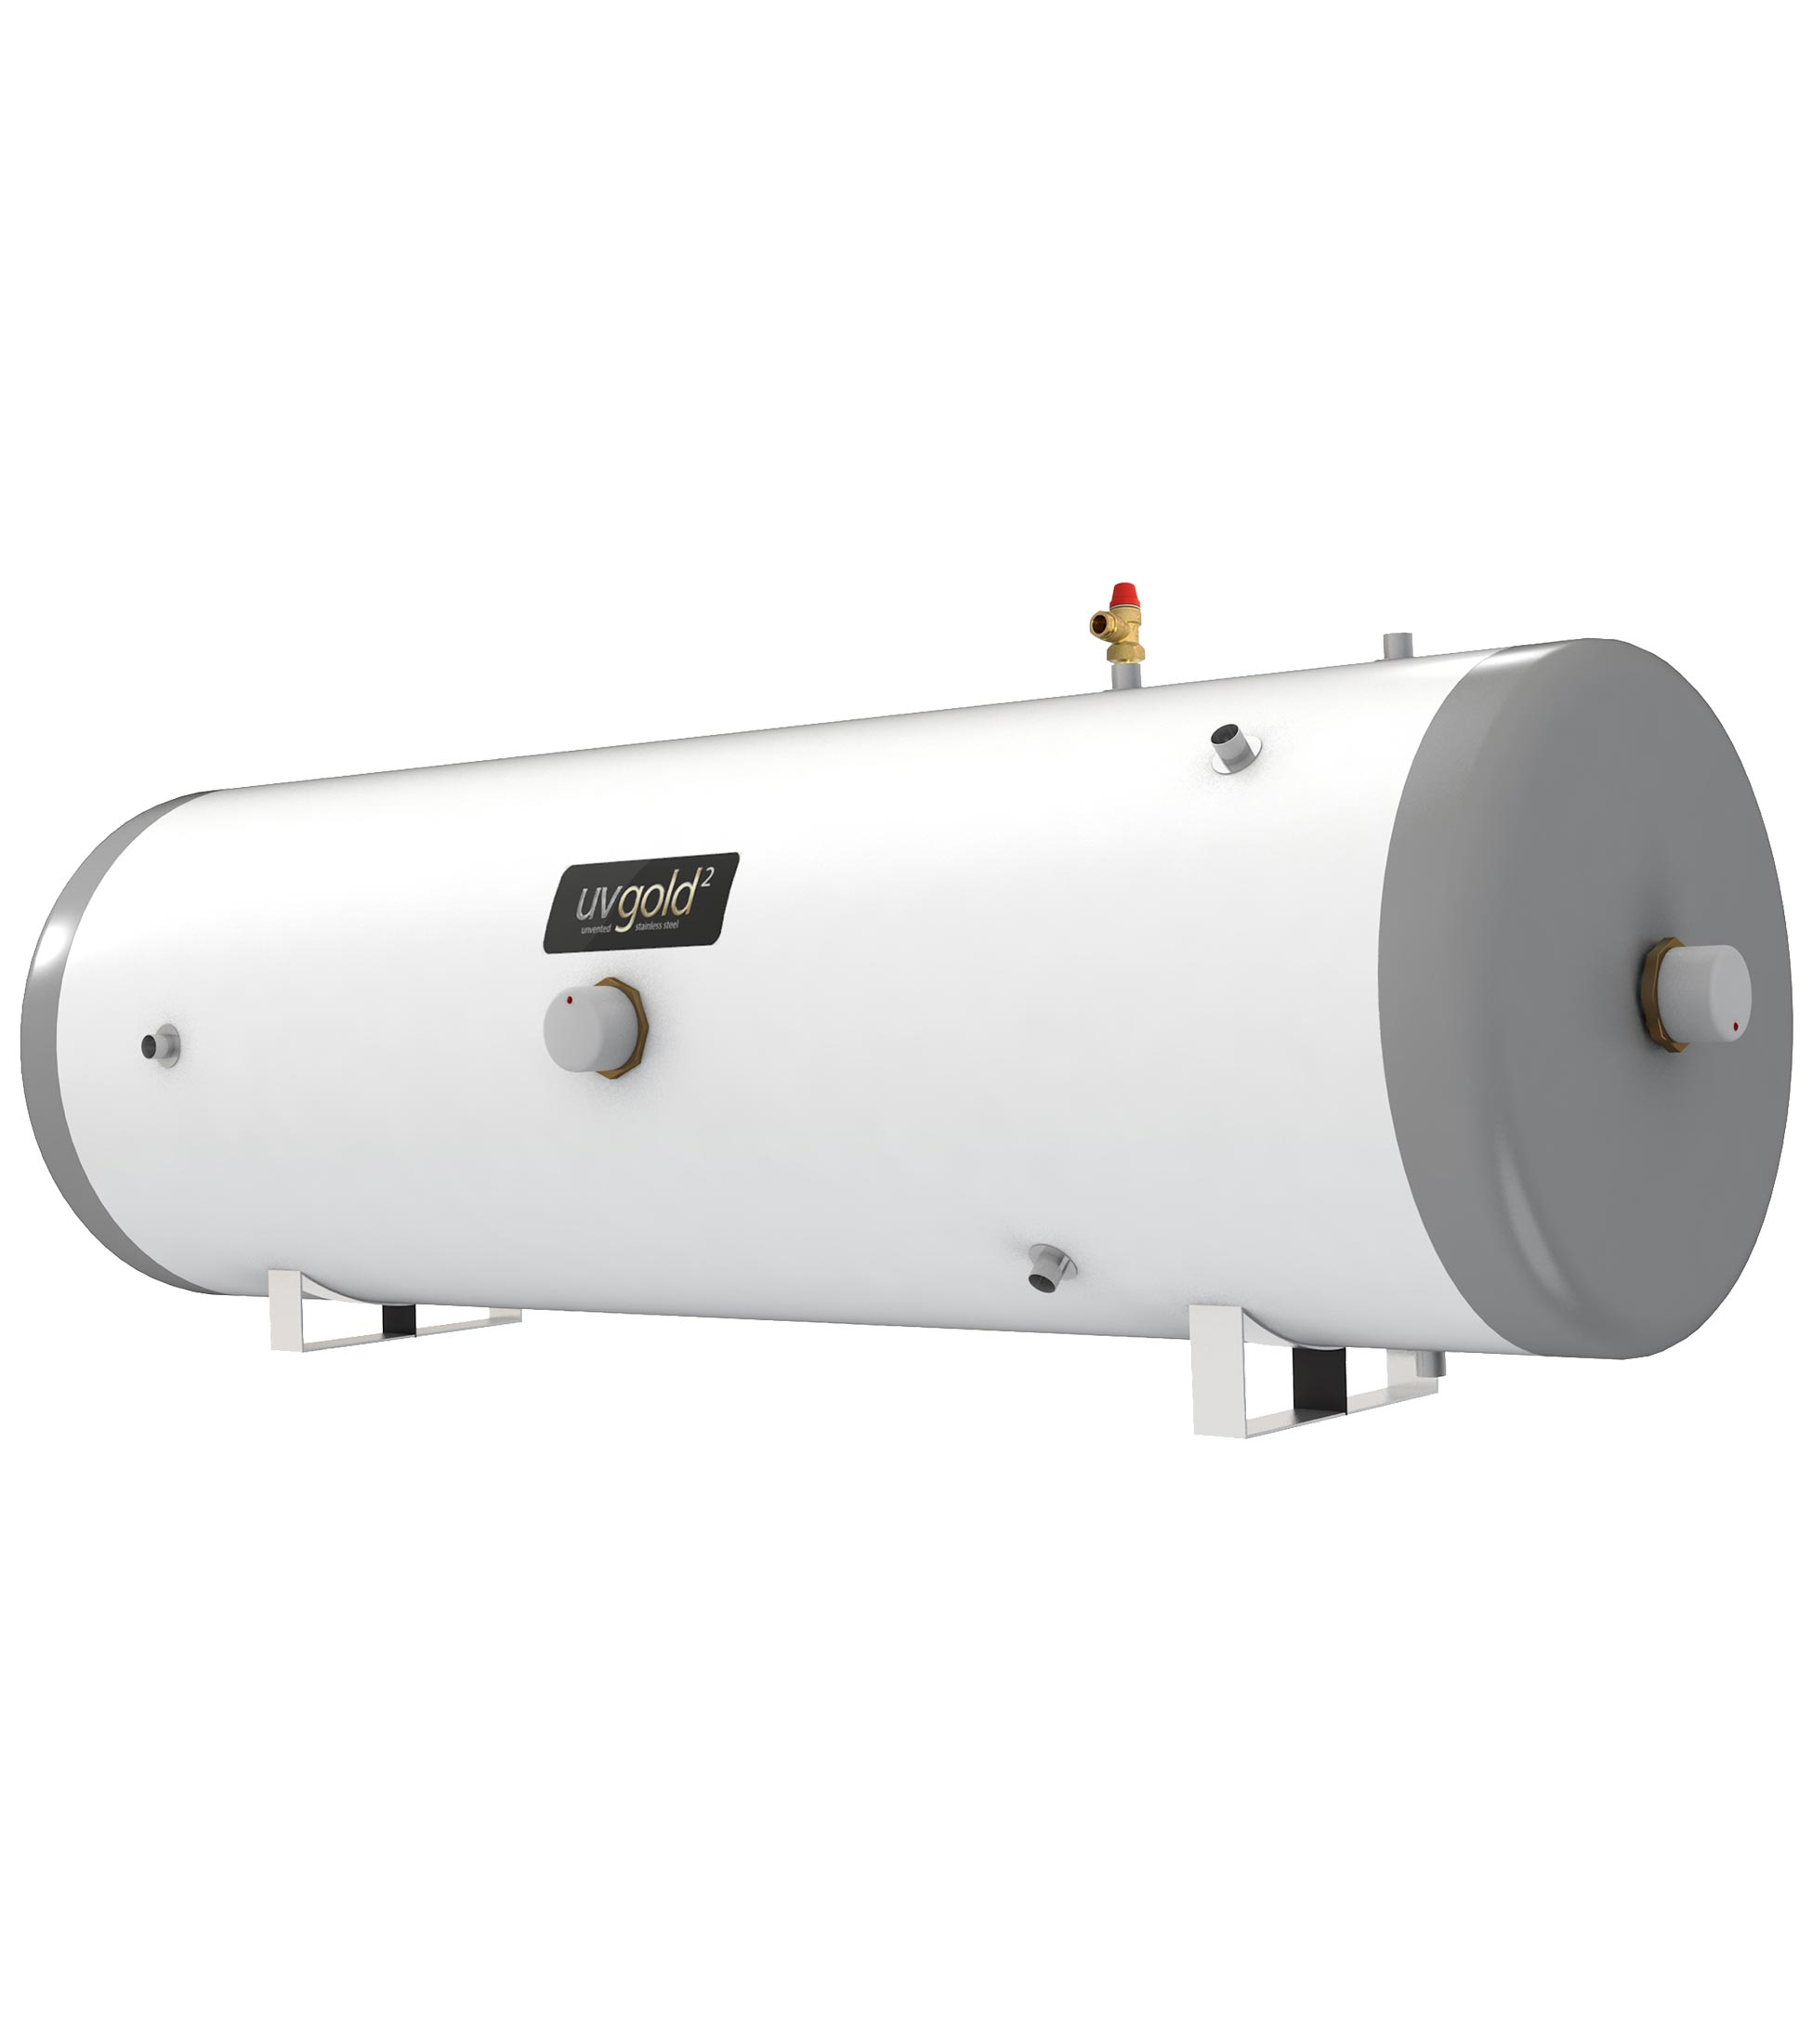 UVgold 2 - Stainless 180L Horizontal Indirect Unvented Hot Water ...